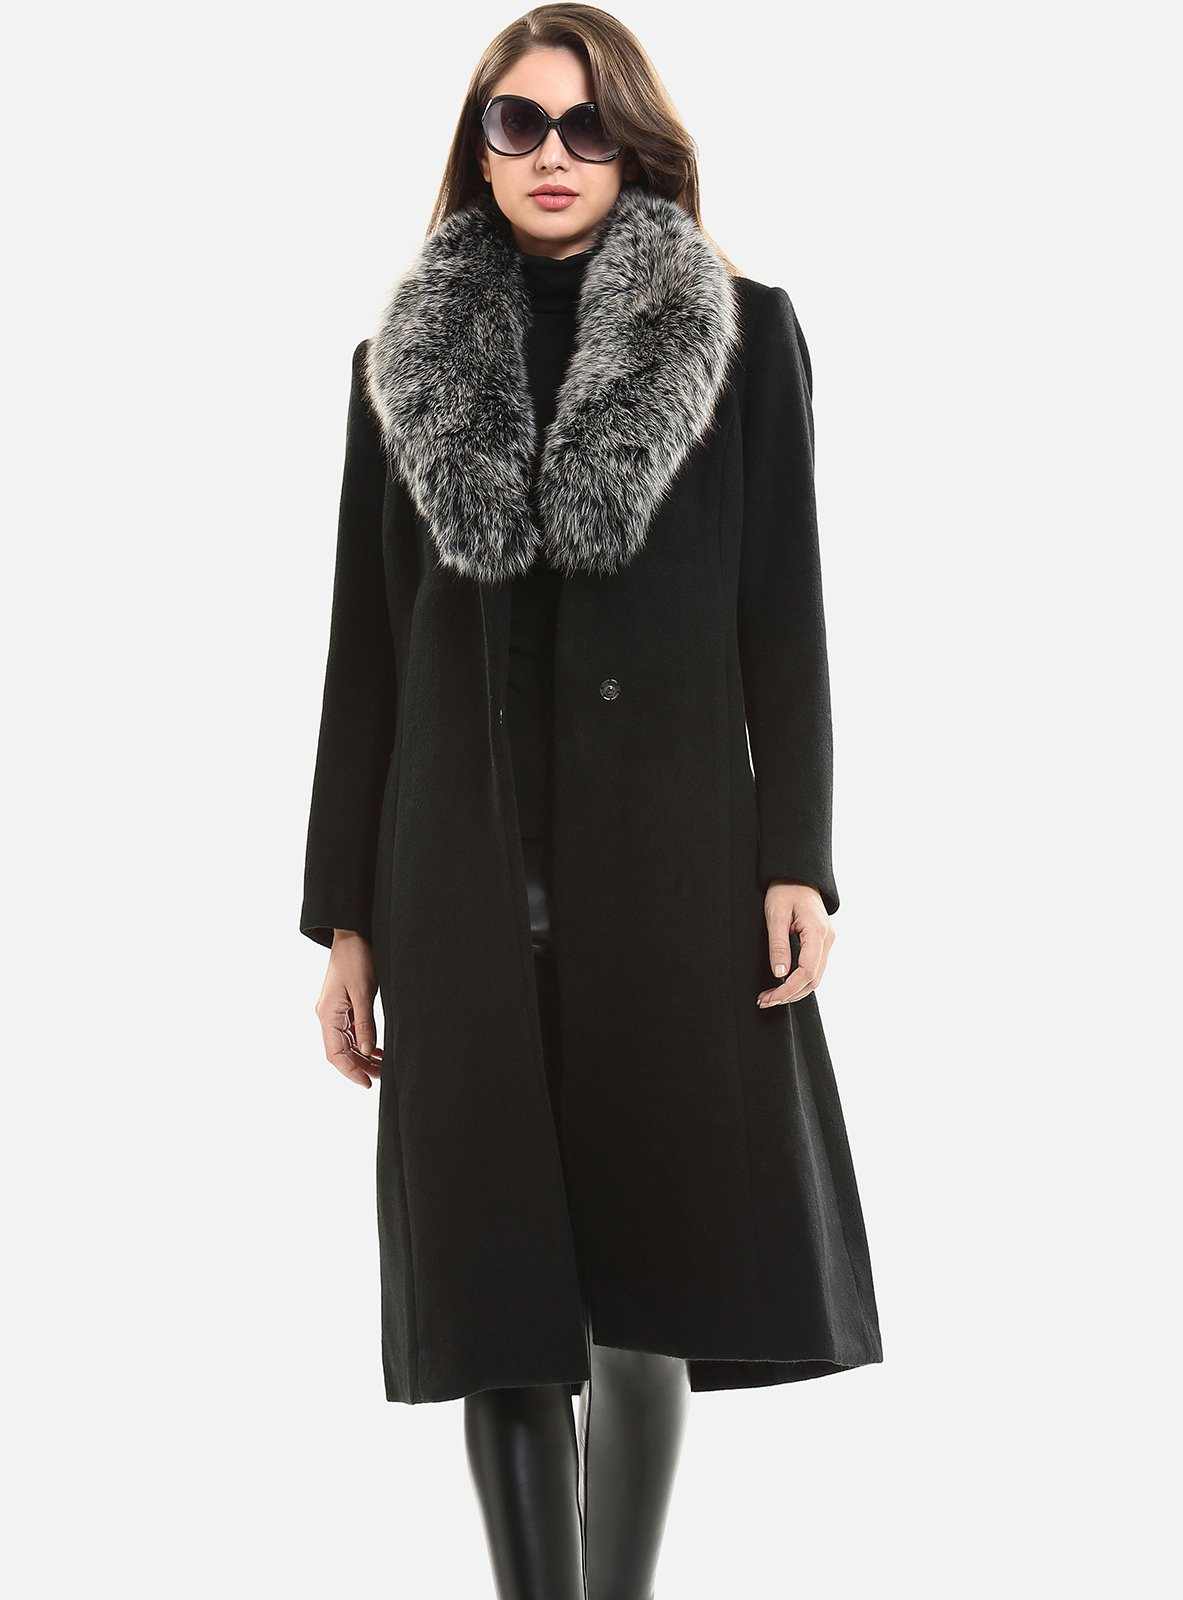 Escalier Women`s Wool Trench Belt Long Coat with Fur Collar Black 4XL by Escalier (Image #3)